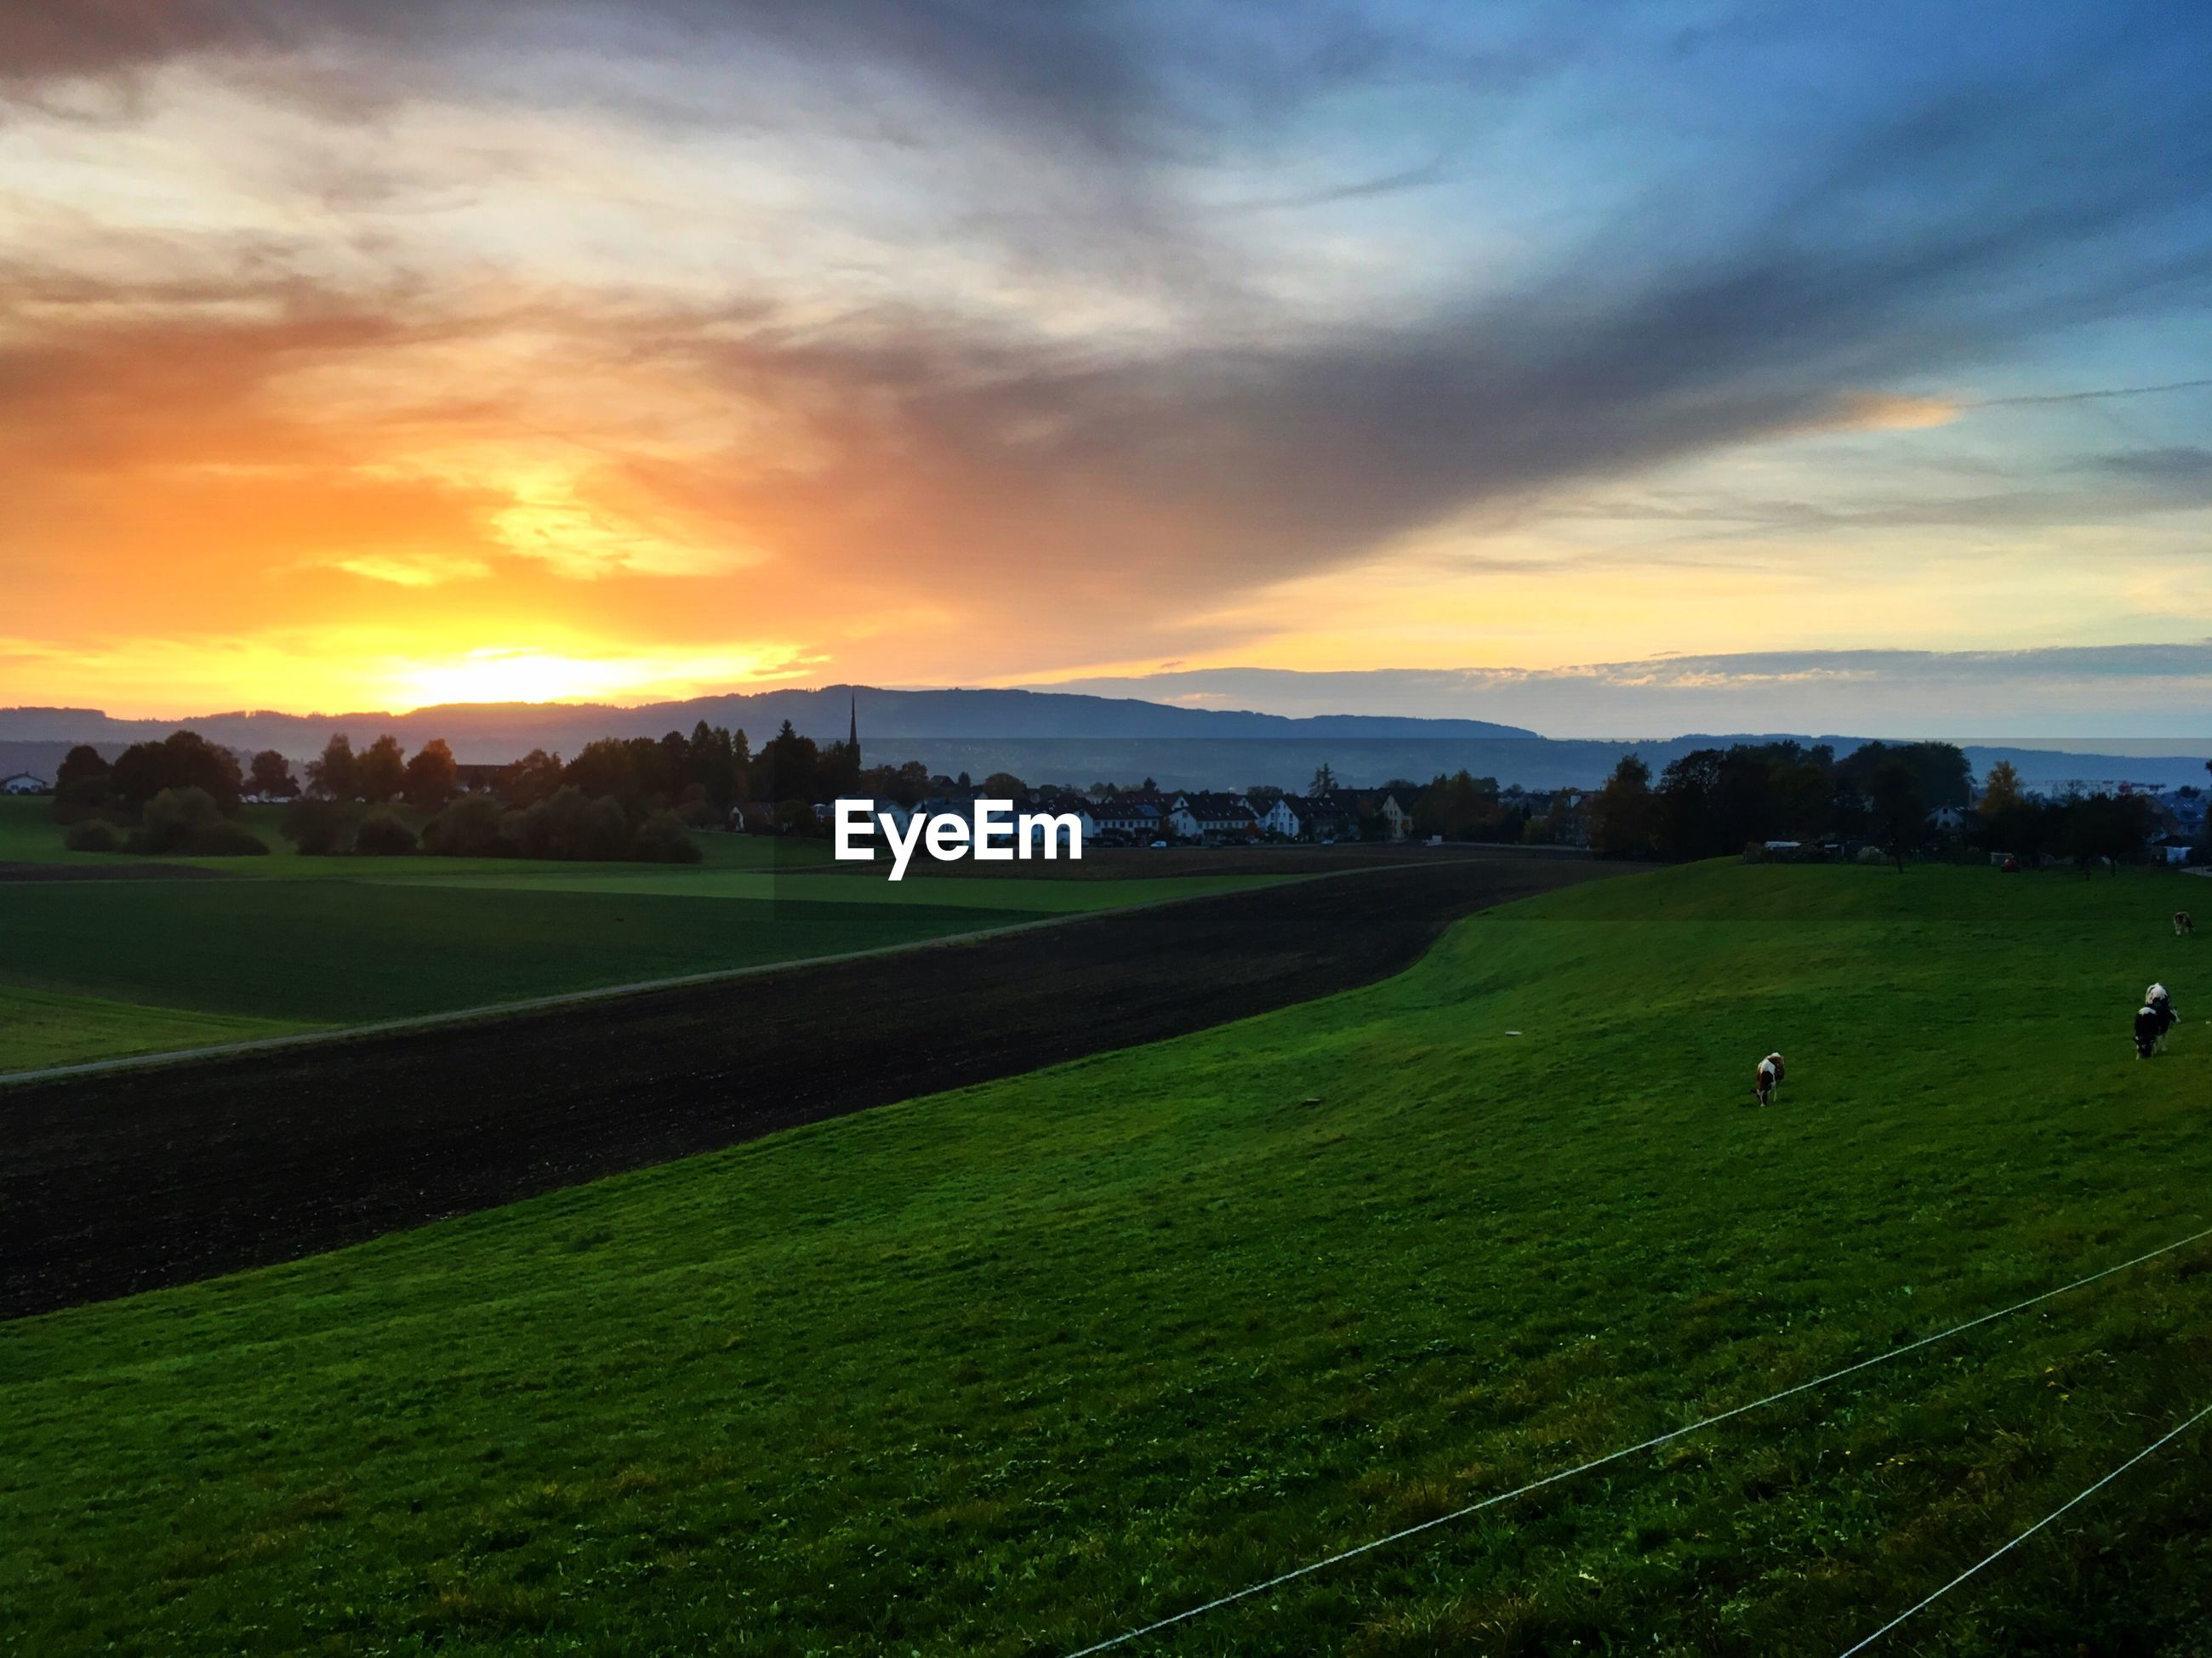 tranquil scene, landscape, sunset, scenics, tranquility, field, beauty in nature, rural scene, agriculture, grass, cloud - sky, green color, dusk, farm, crop, cultivated land, growth, nature, sky, cloudy, dramatic sky, non-urban scene, grassy, outdoors, atmospheric mood, mountain range, mountain, sun